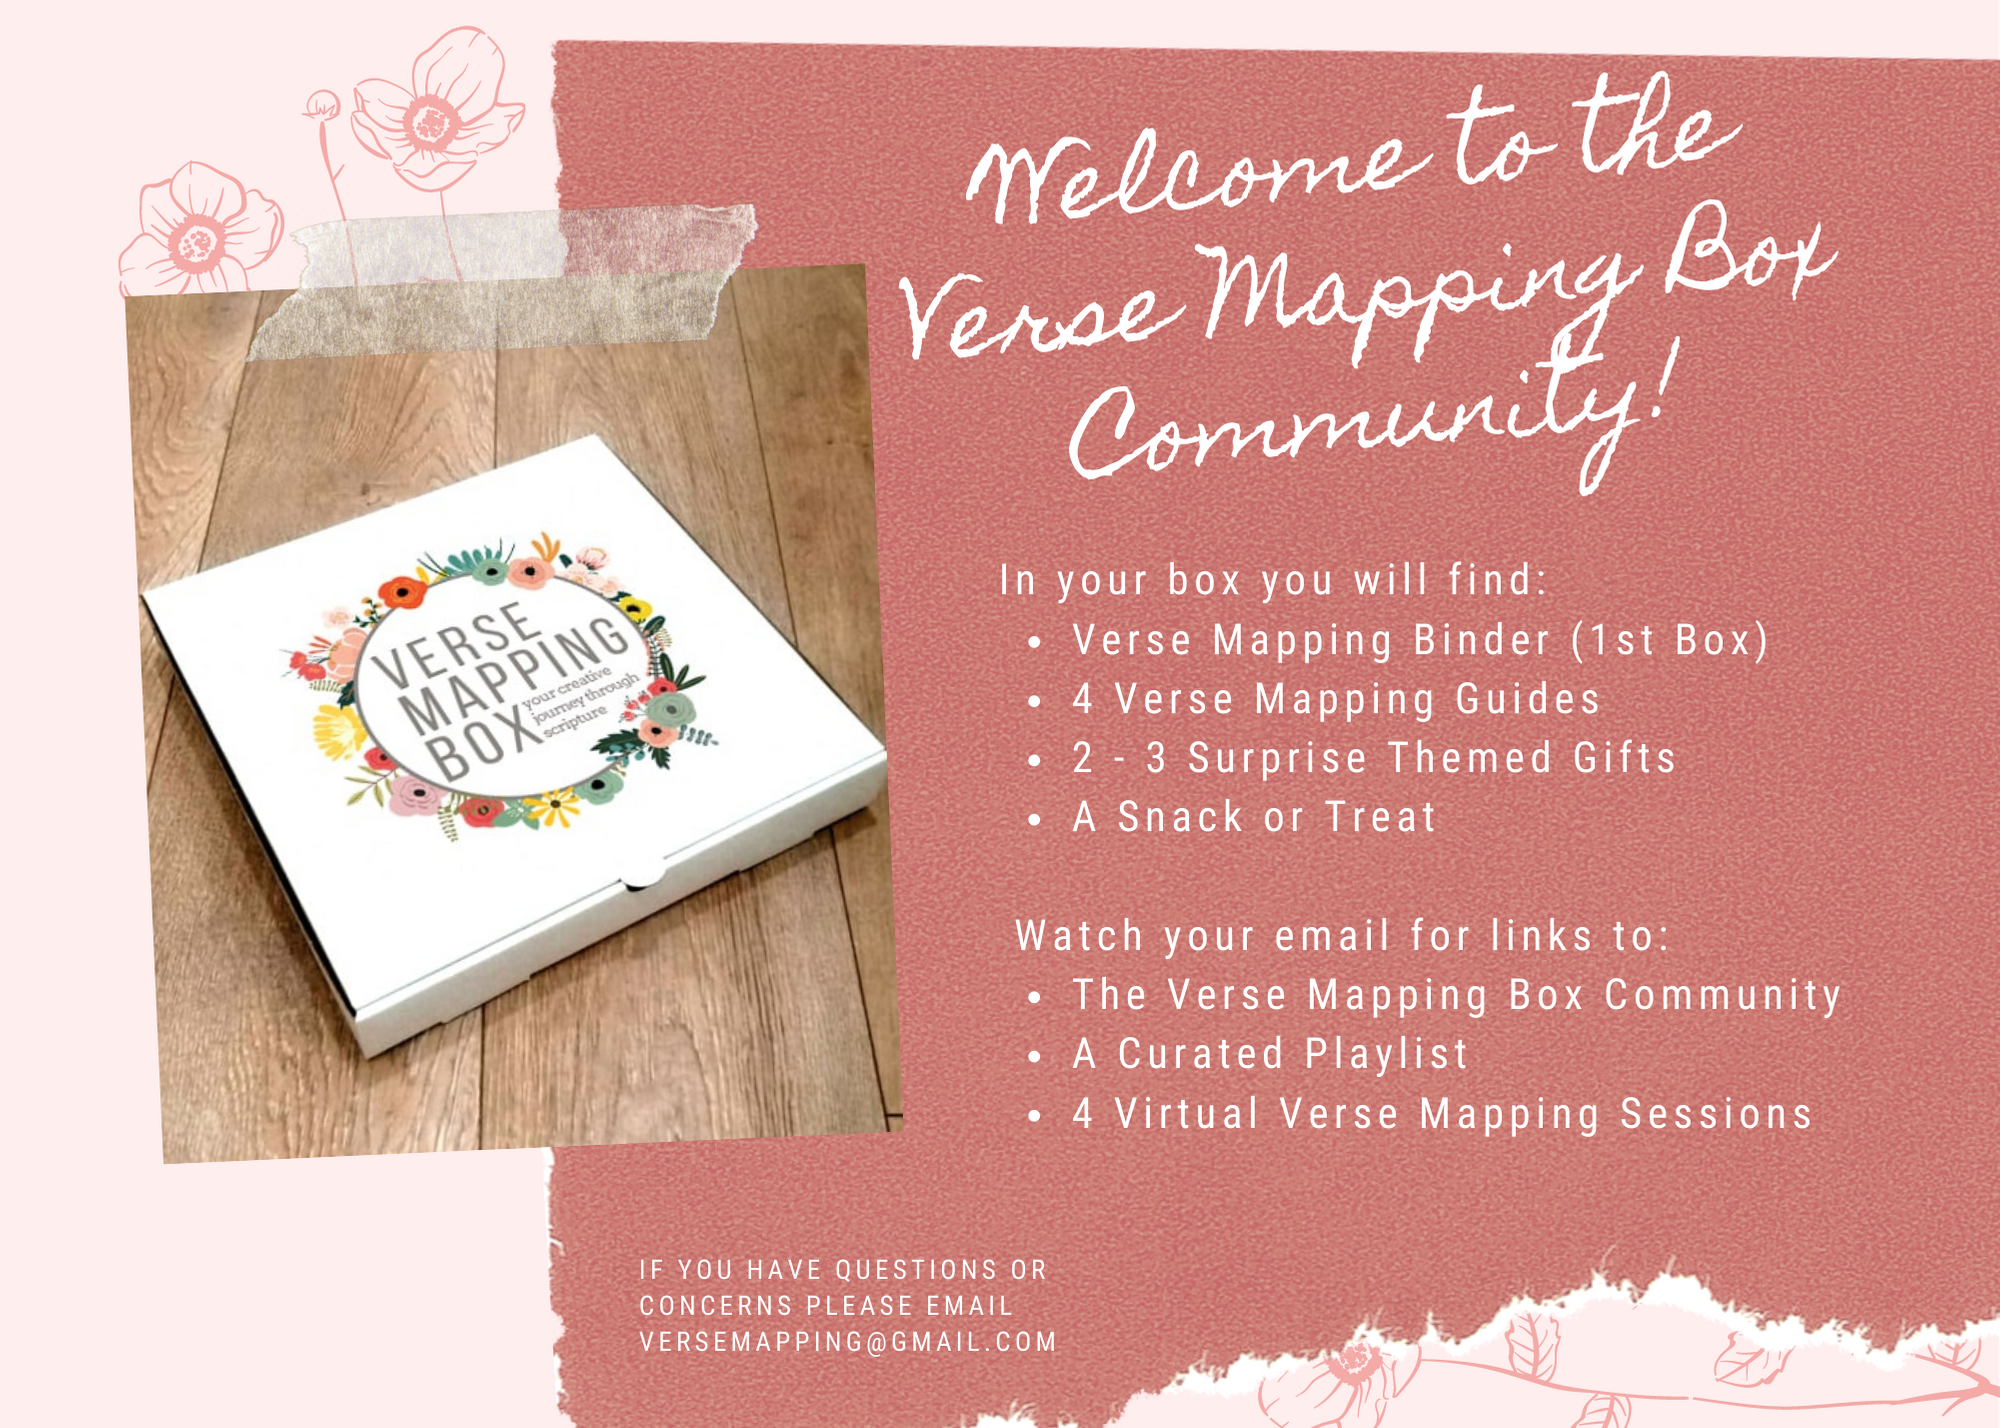 What's Inside the Verse Mapping Box?